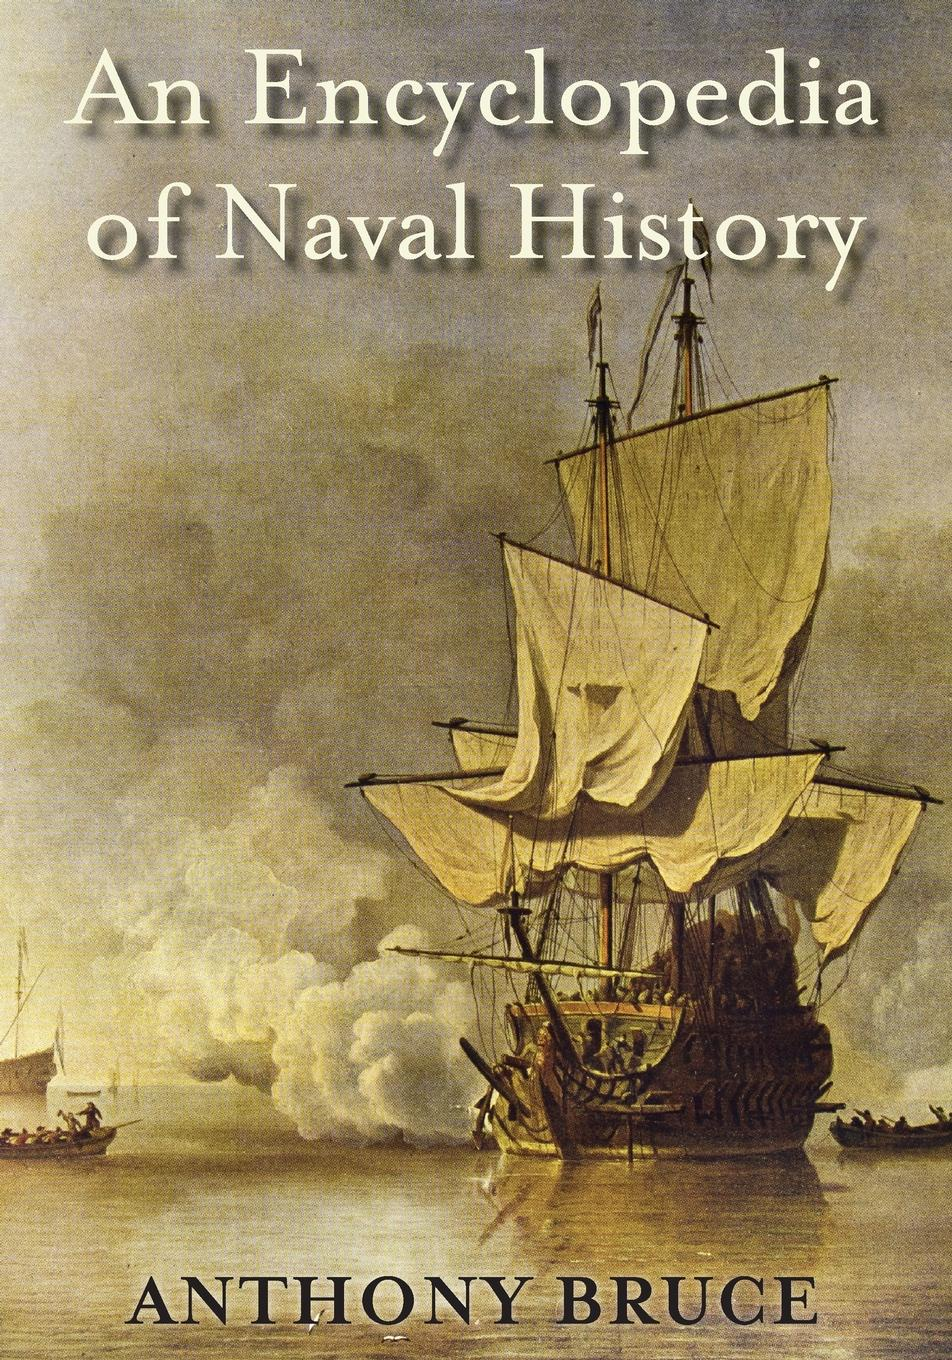 Anthony Bruce An Encyclopedia of Naval History charles richard tuttle the centennial northwest an illustrated history of the northwest being a full and complete civil political and military history of this great section of the united states from its earliest settlement to the present time